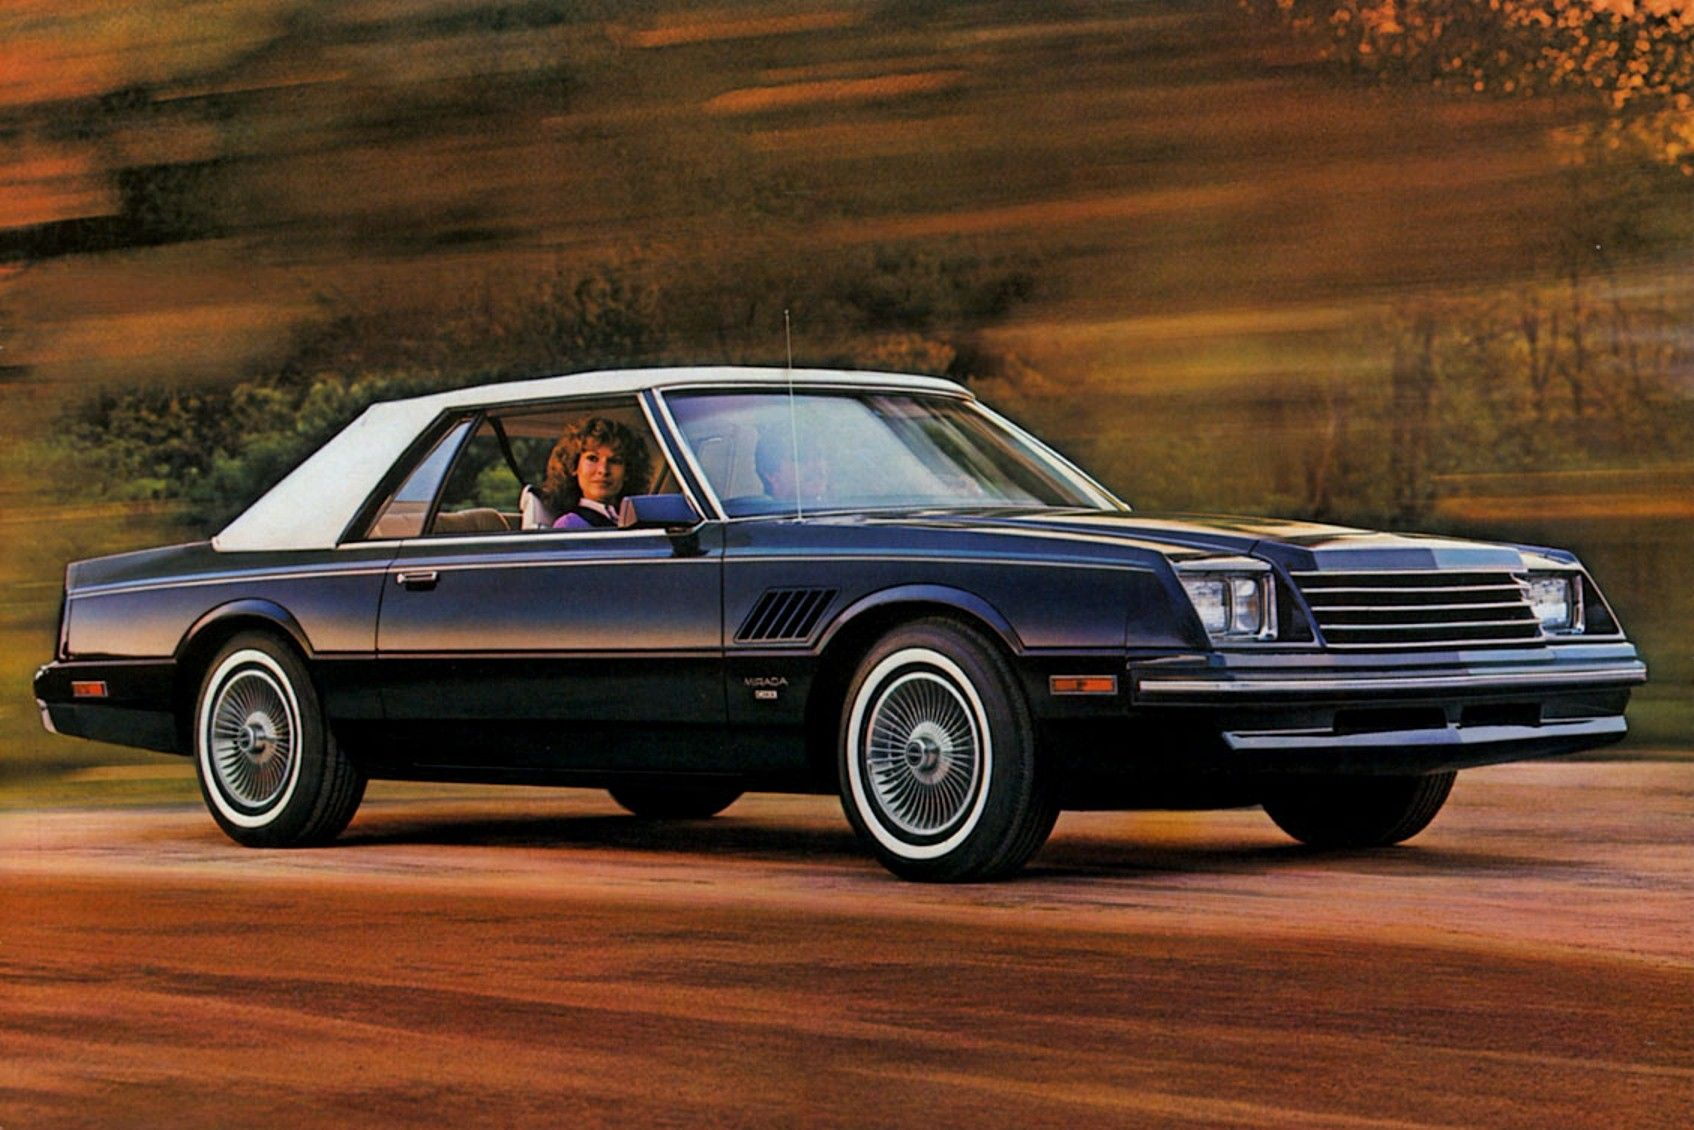 The dodge brand s all new entry in this highly competitive segment for 1980 was the